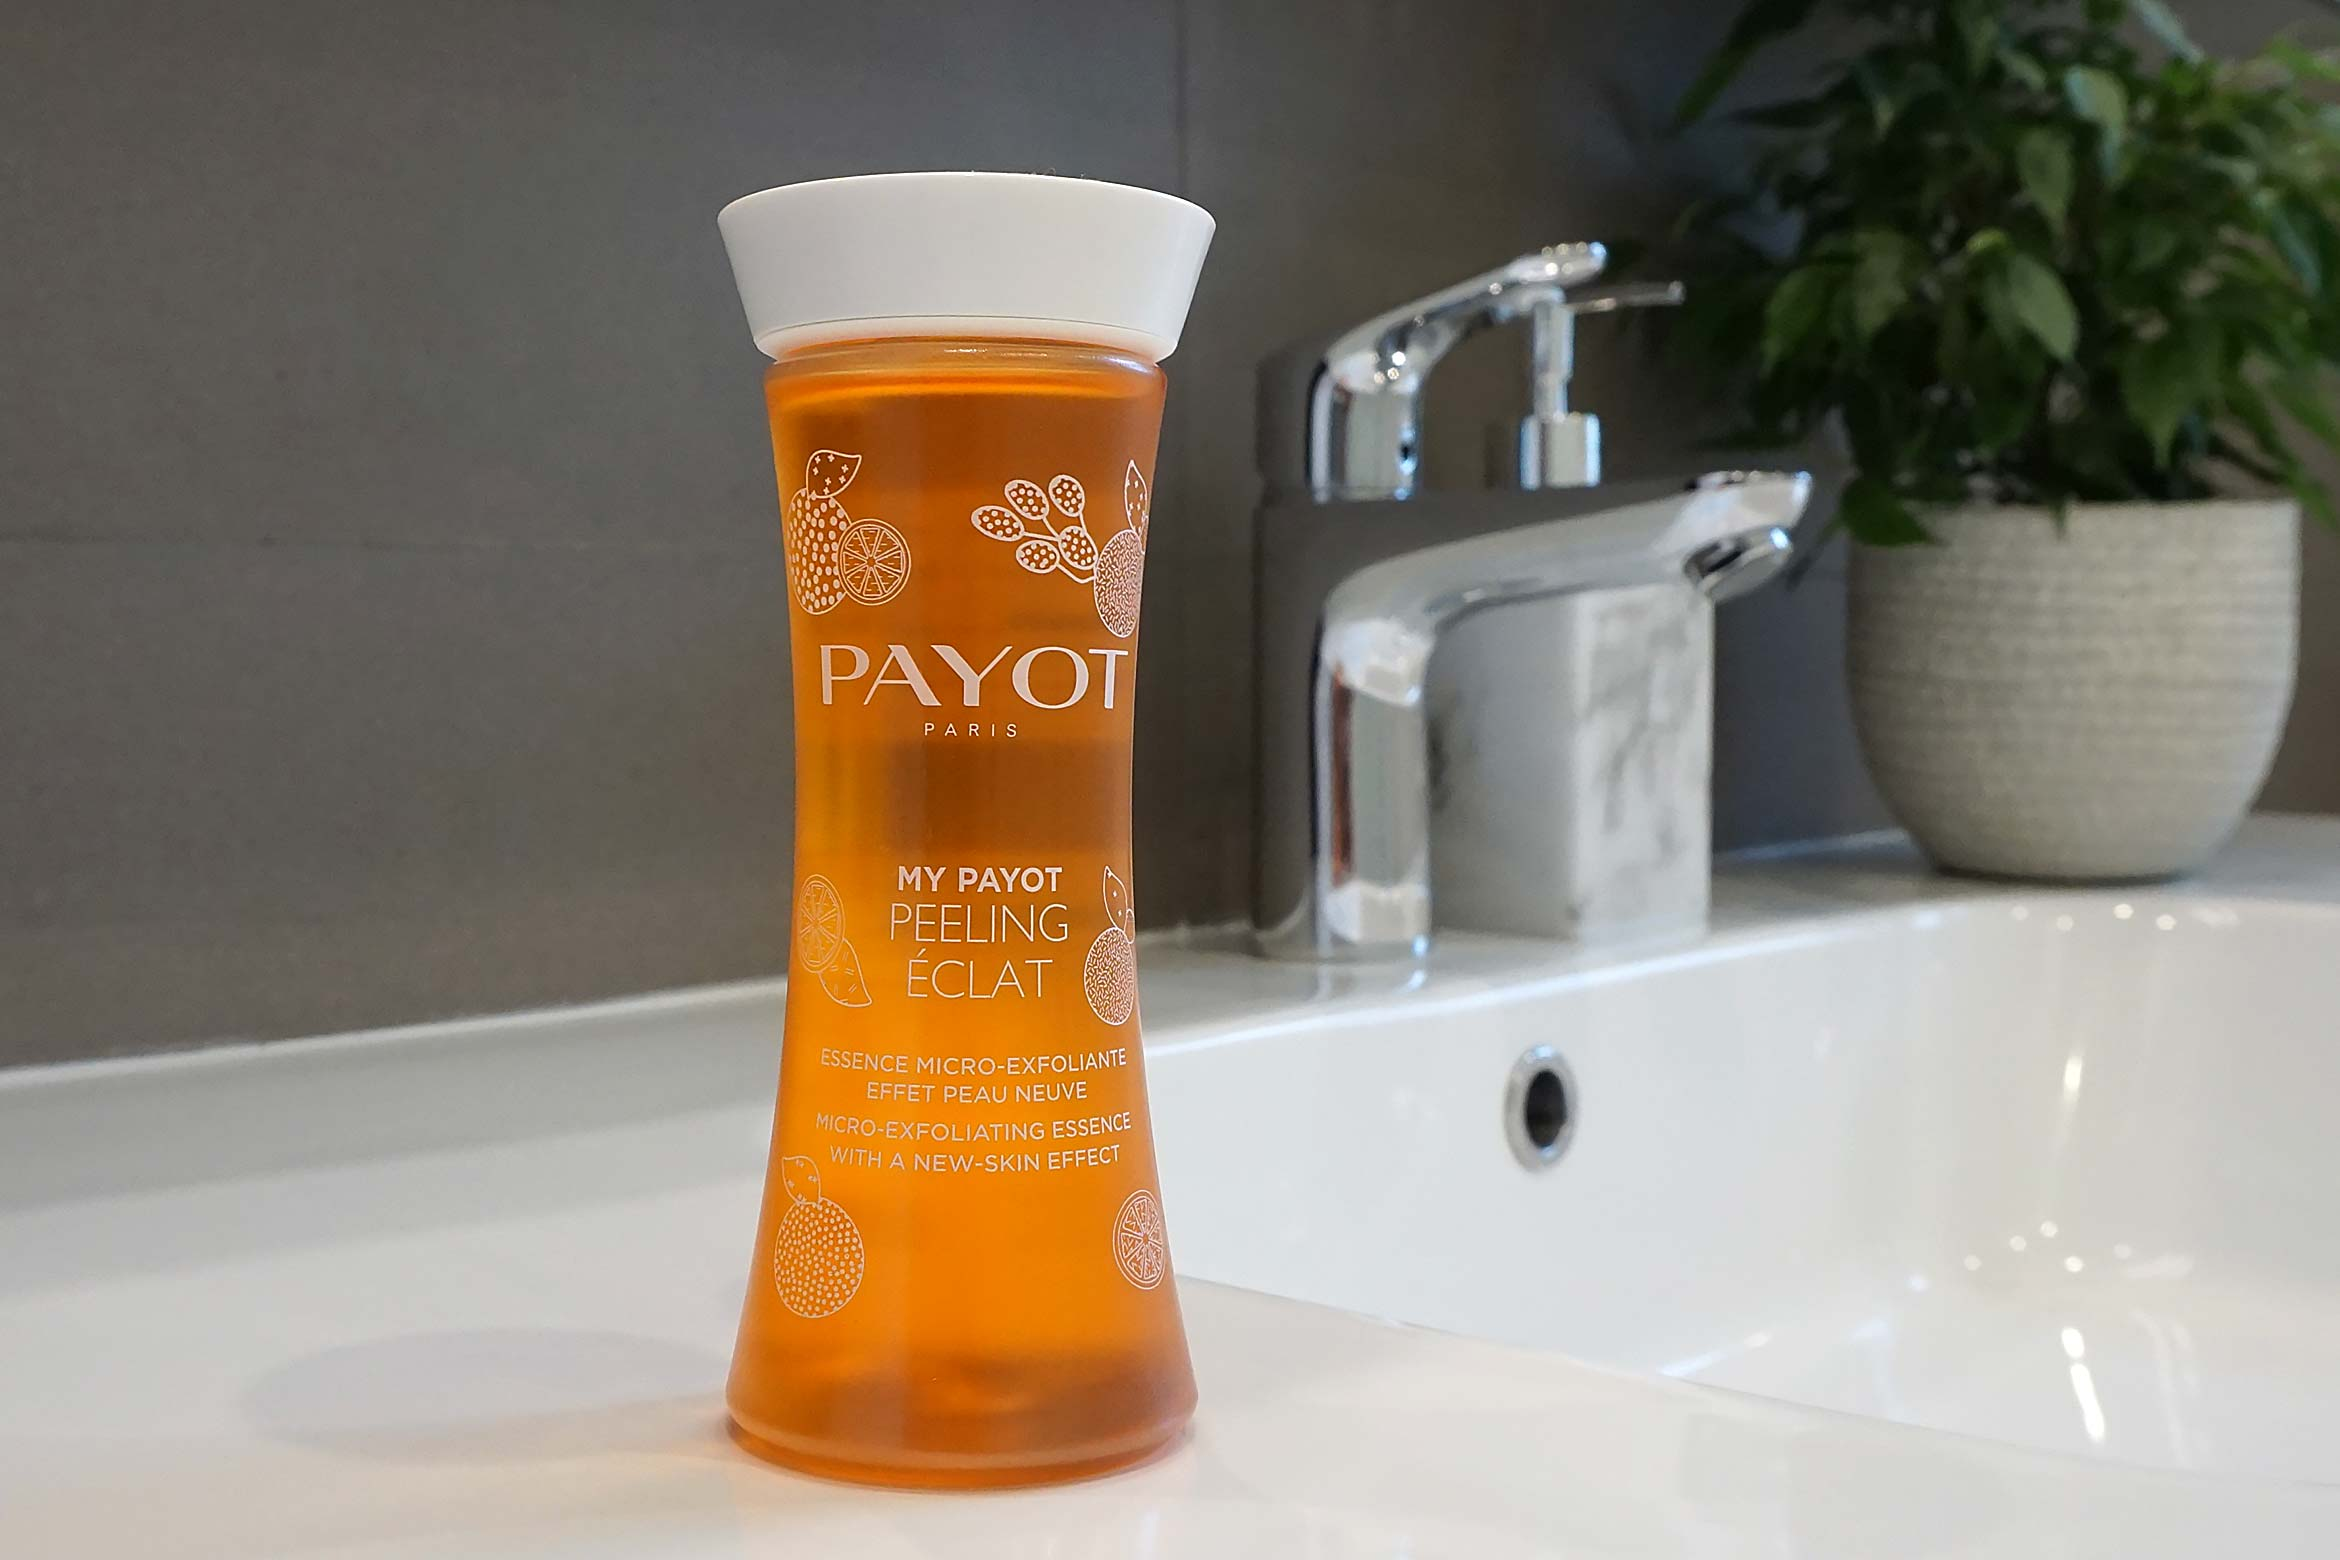 payot my payot peeling eclat review